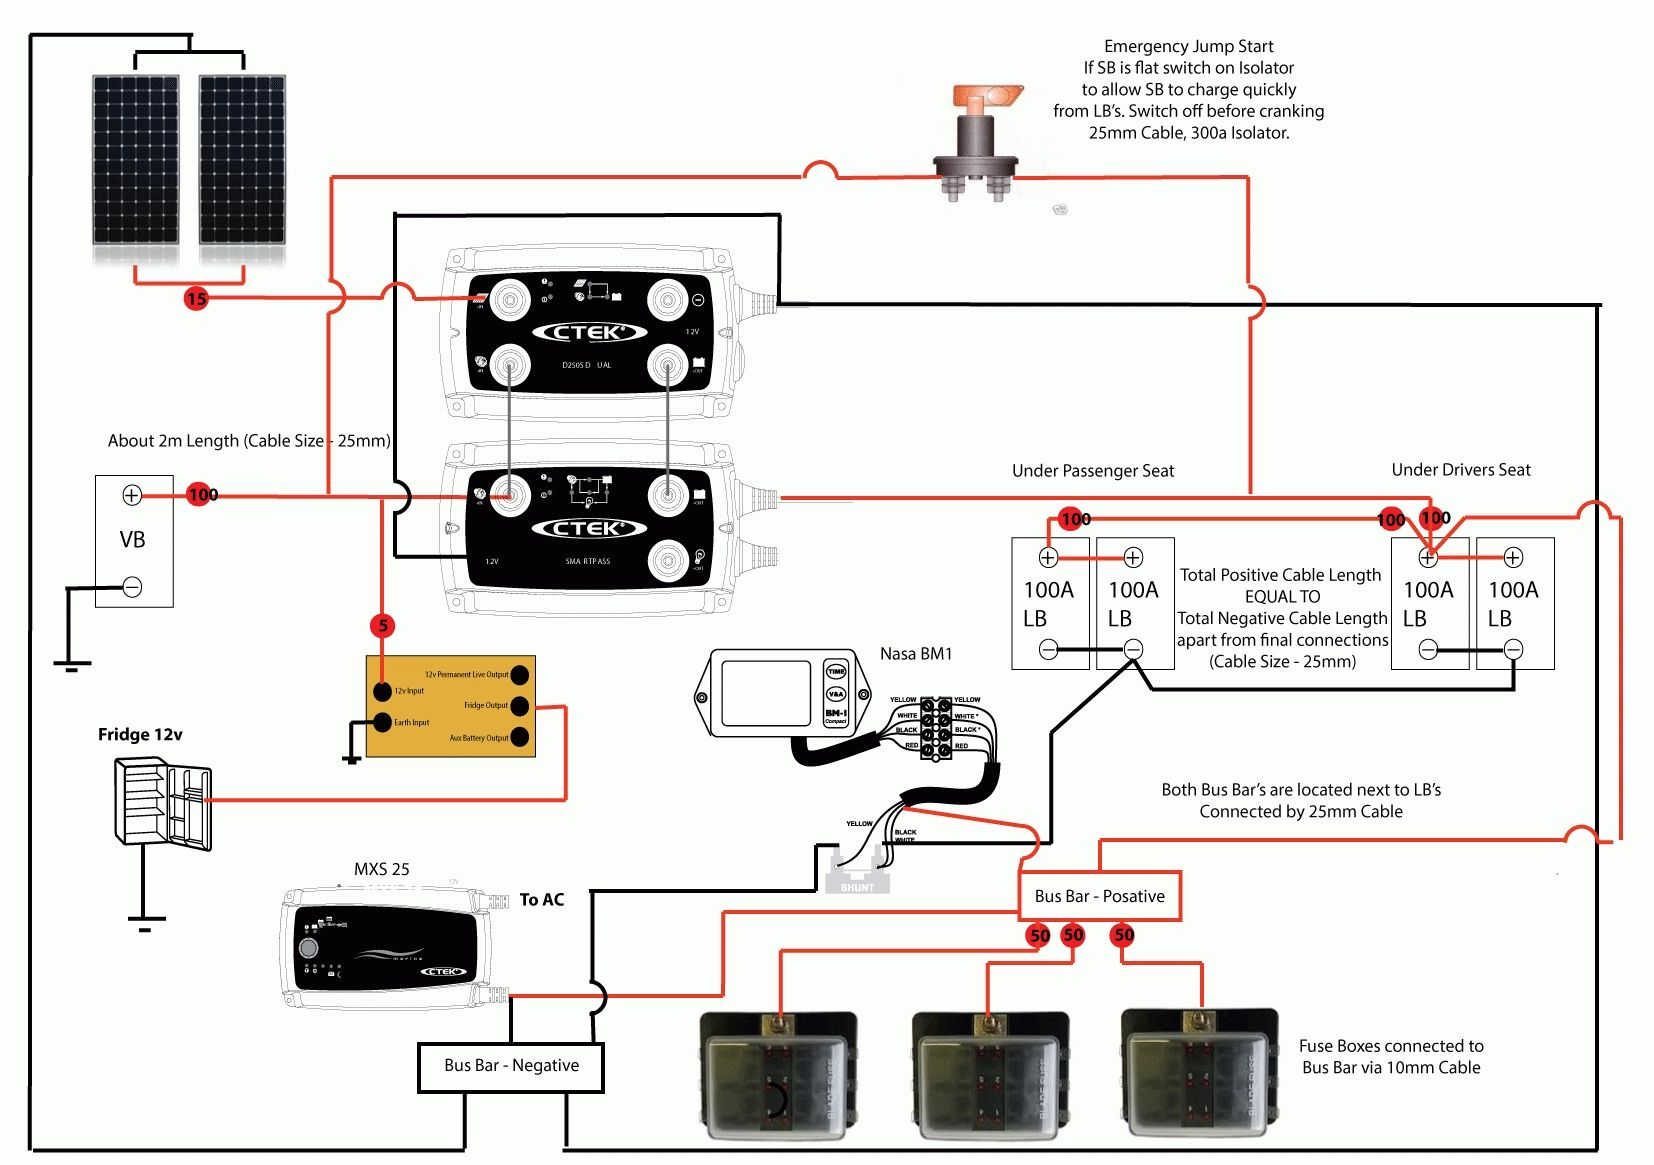 Rv Dual Battery Switch Wiring Diagram For 2007 Dodge Ram 2500 Nasa Monitor Wiringdiagram Org